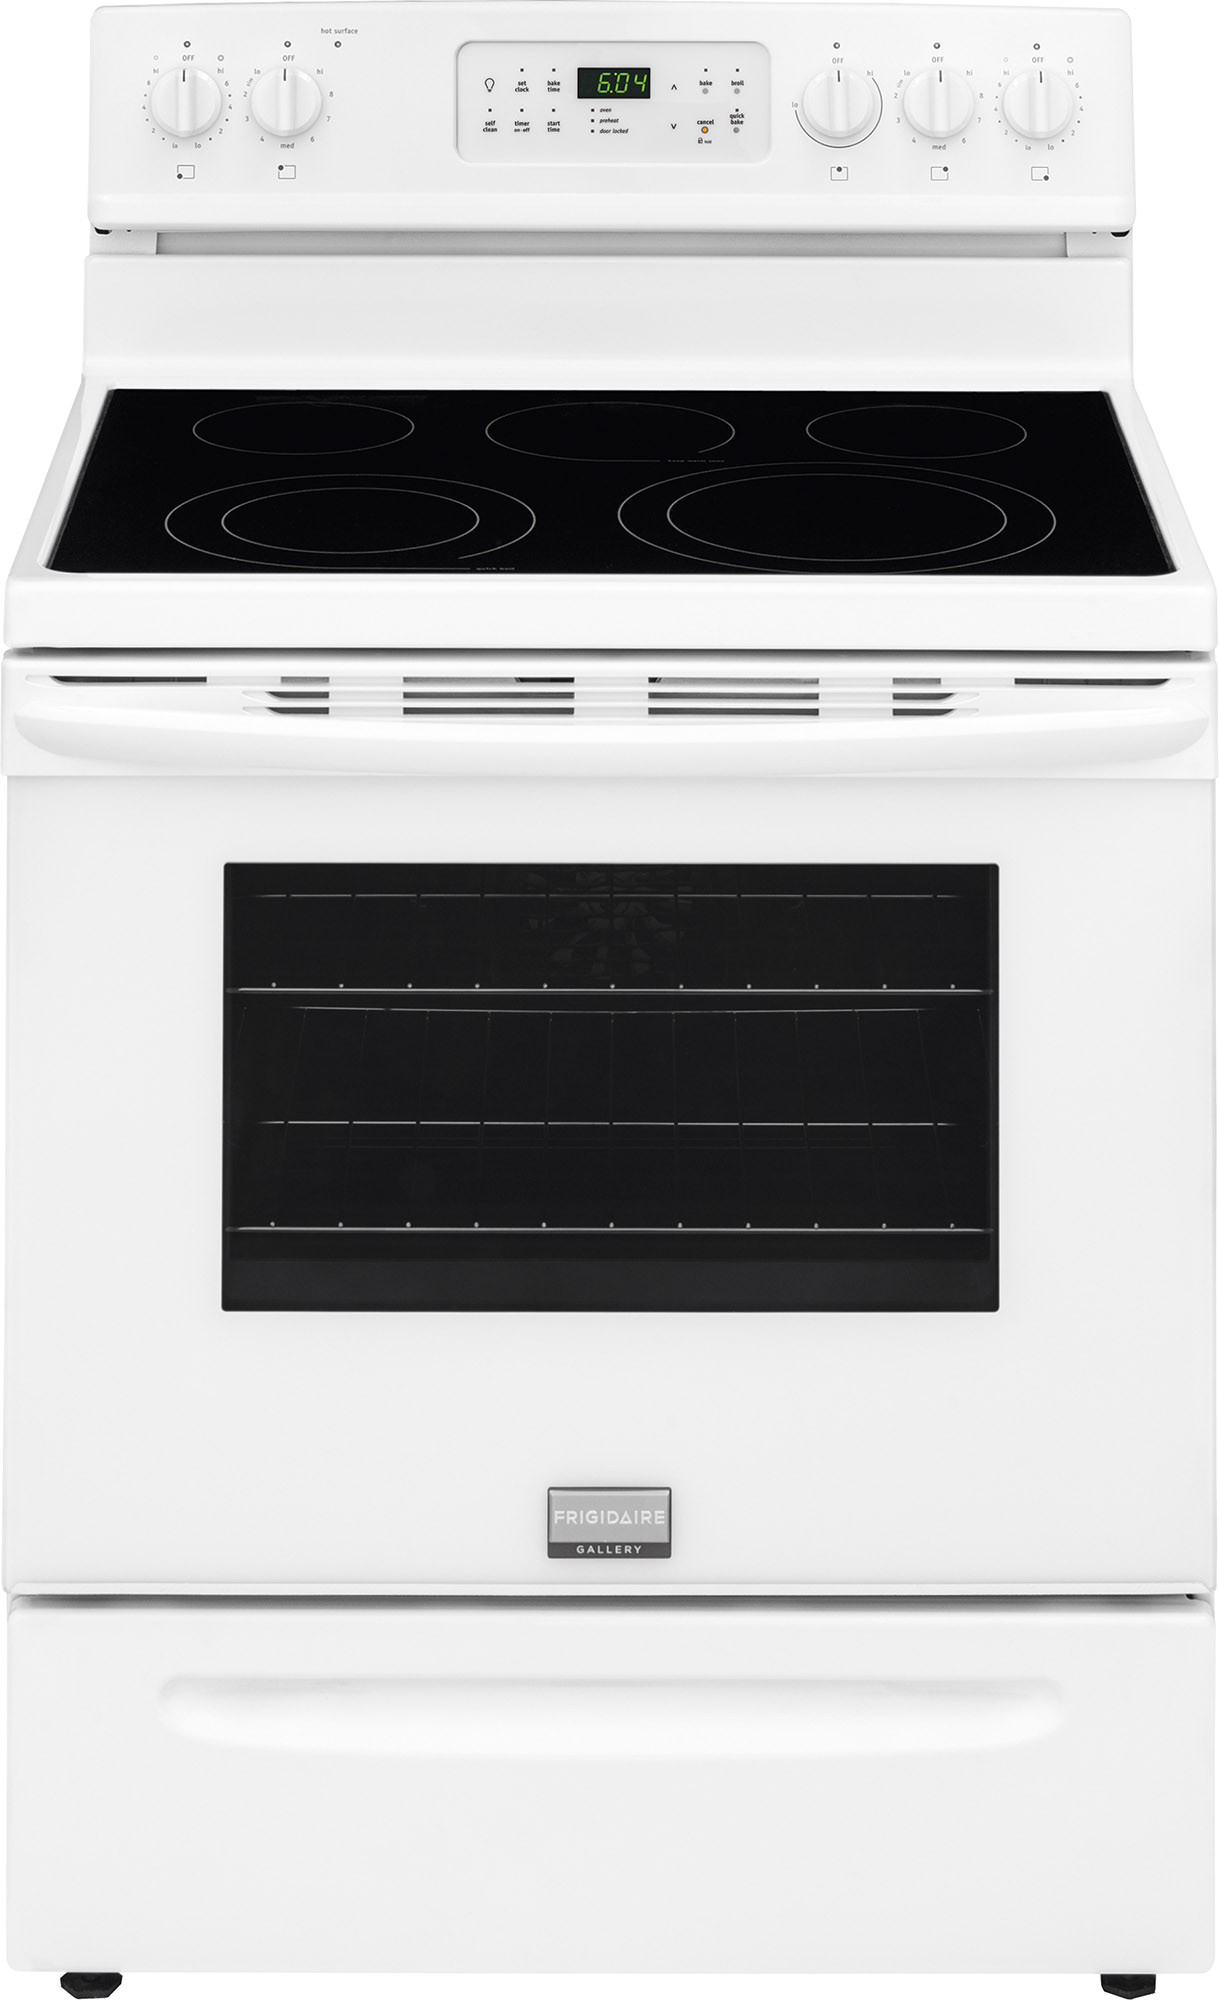 Frigidaire Fgef3035rw 30 Inch Freestanding Electric Range With True Convection Storage Drawer One Touch Self Clean Boil Burner 5 7 Cu Ft